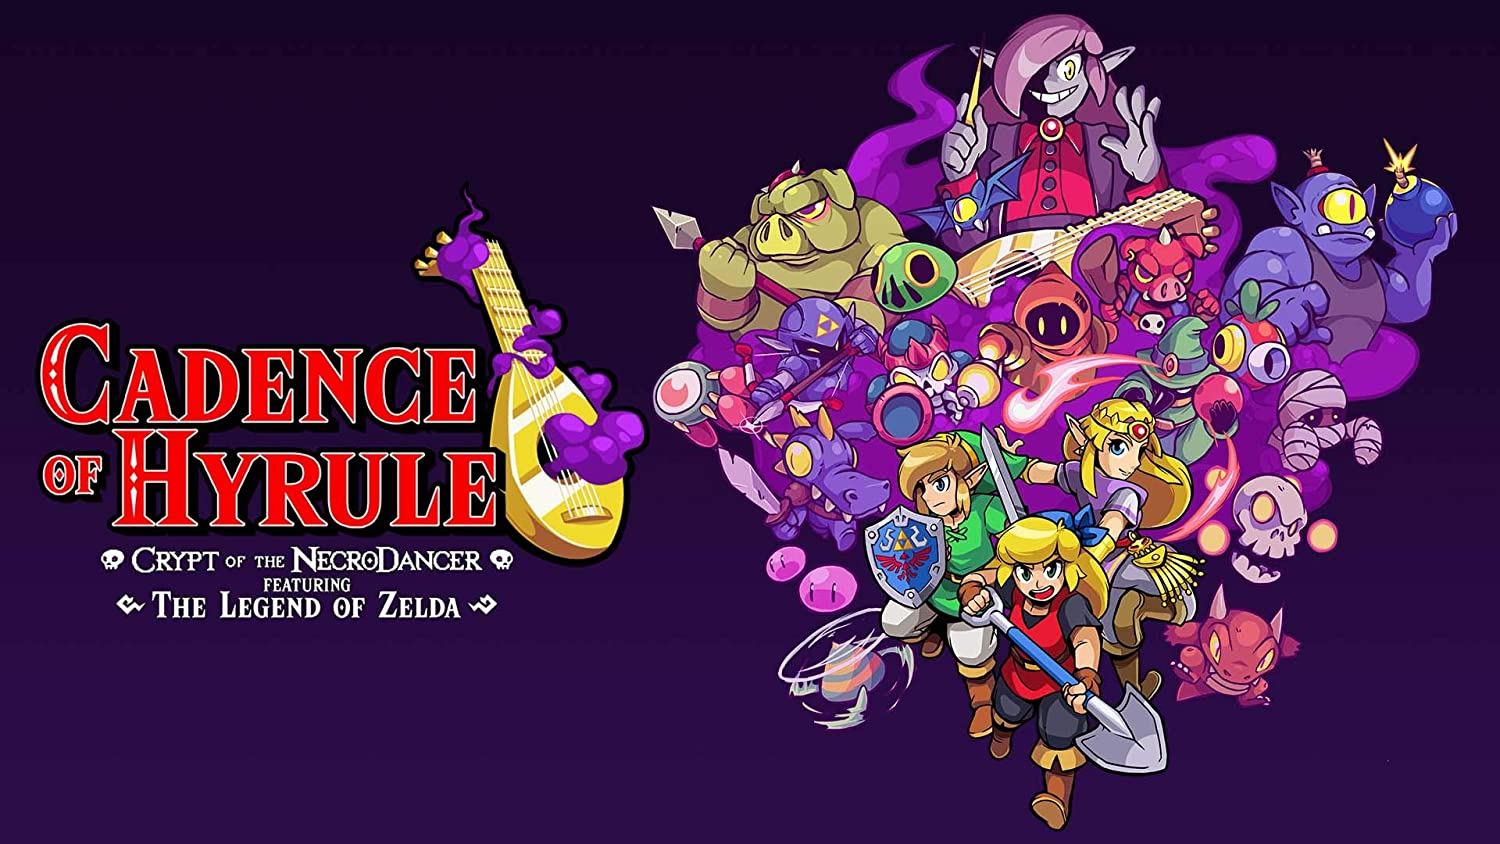 Amazon Com Cadence Of Hyrule Crypt Of The Necrodancer Featuring The Legend Of Zelda Nintendo Switch Digital Code Video Games